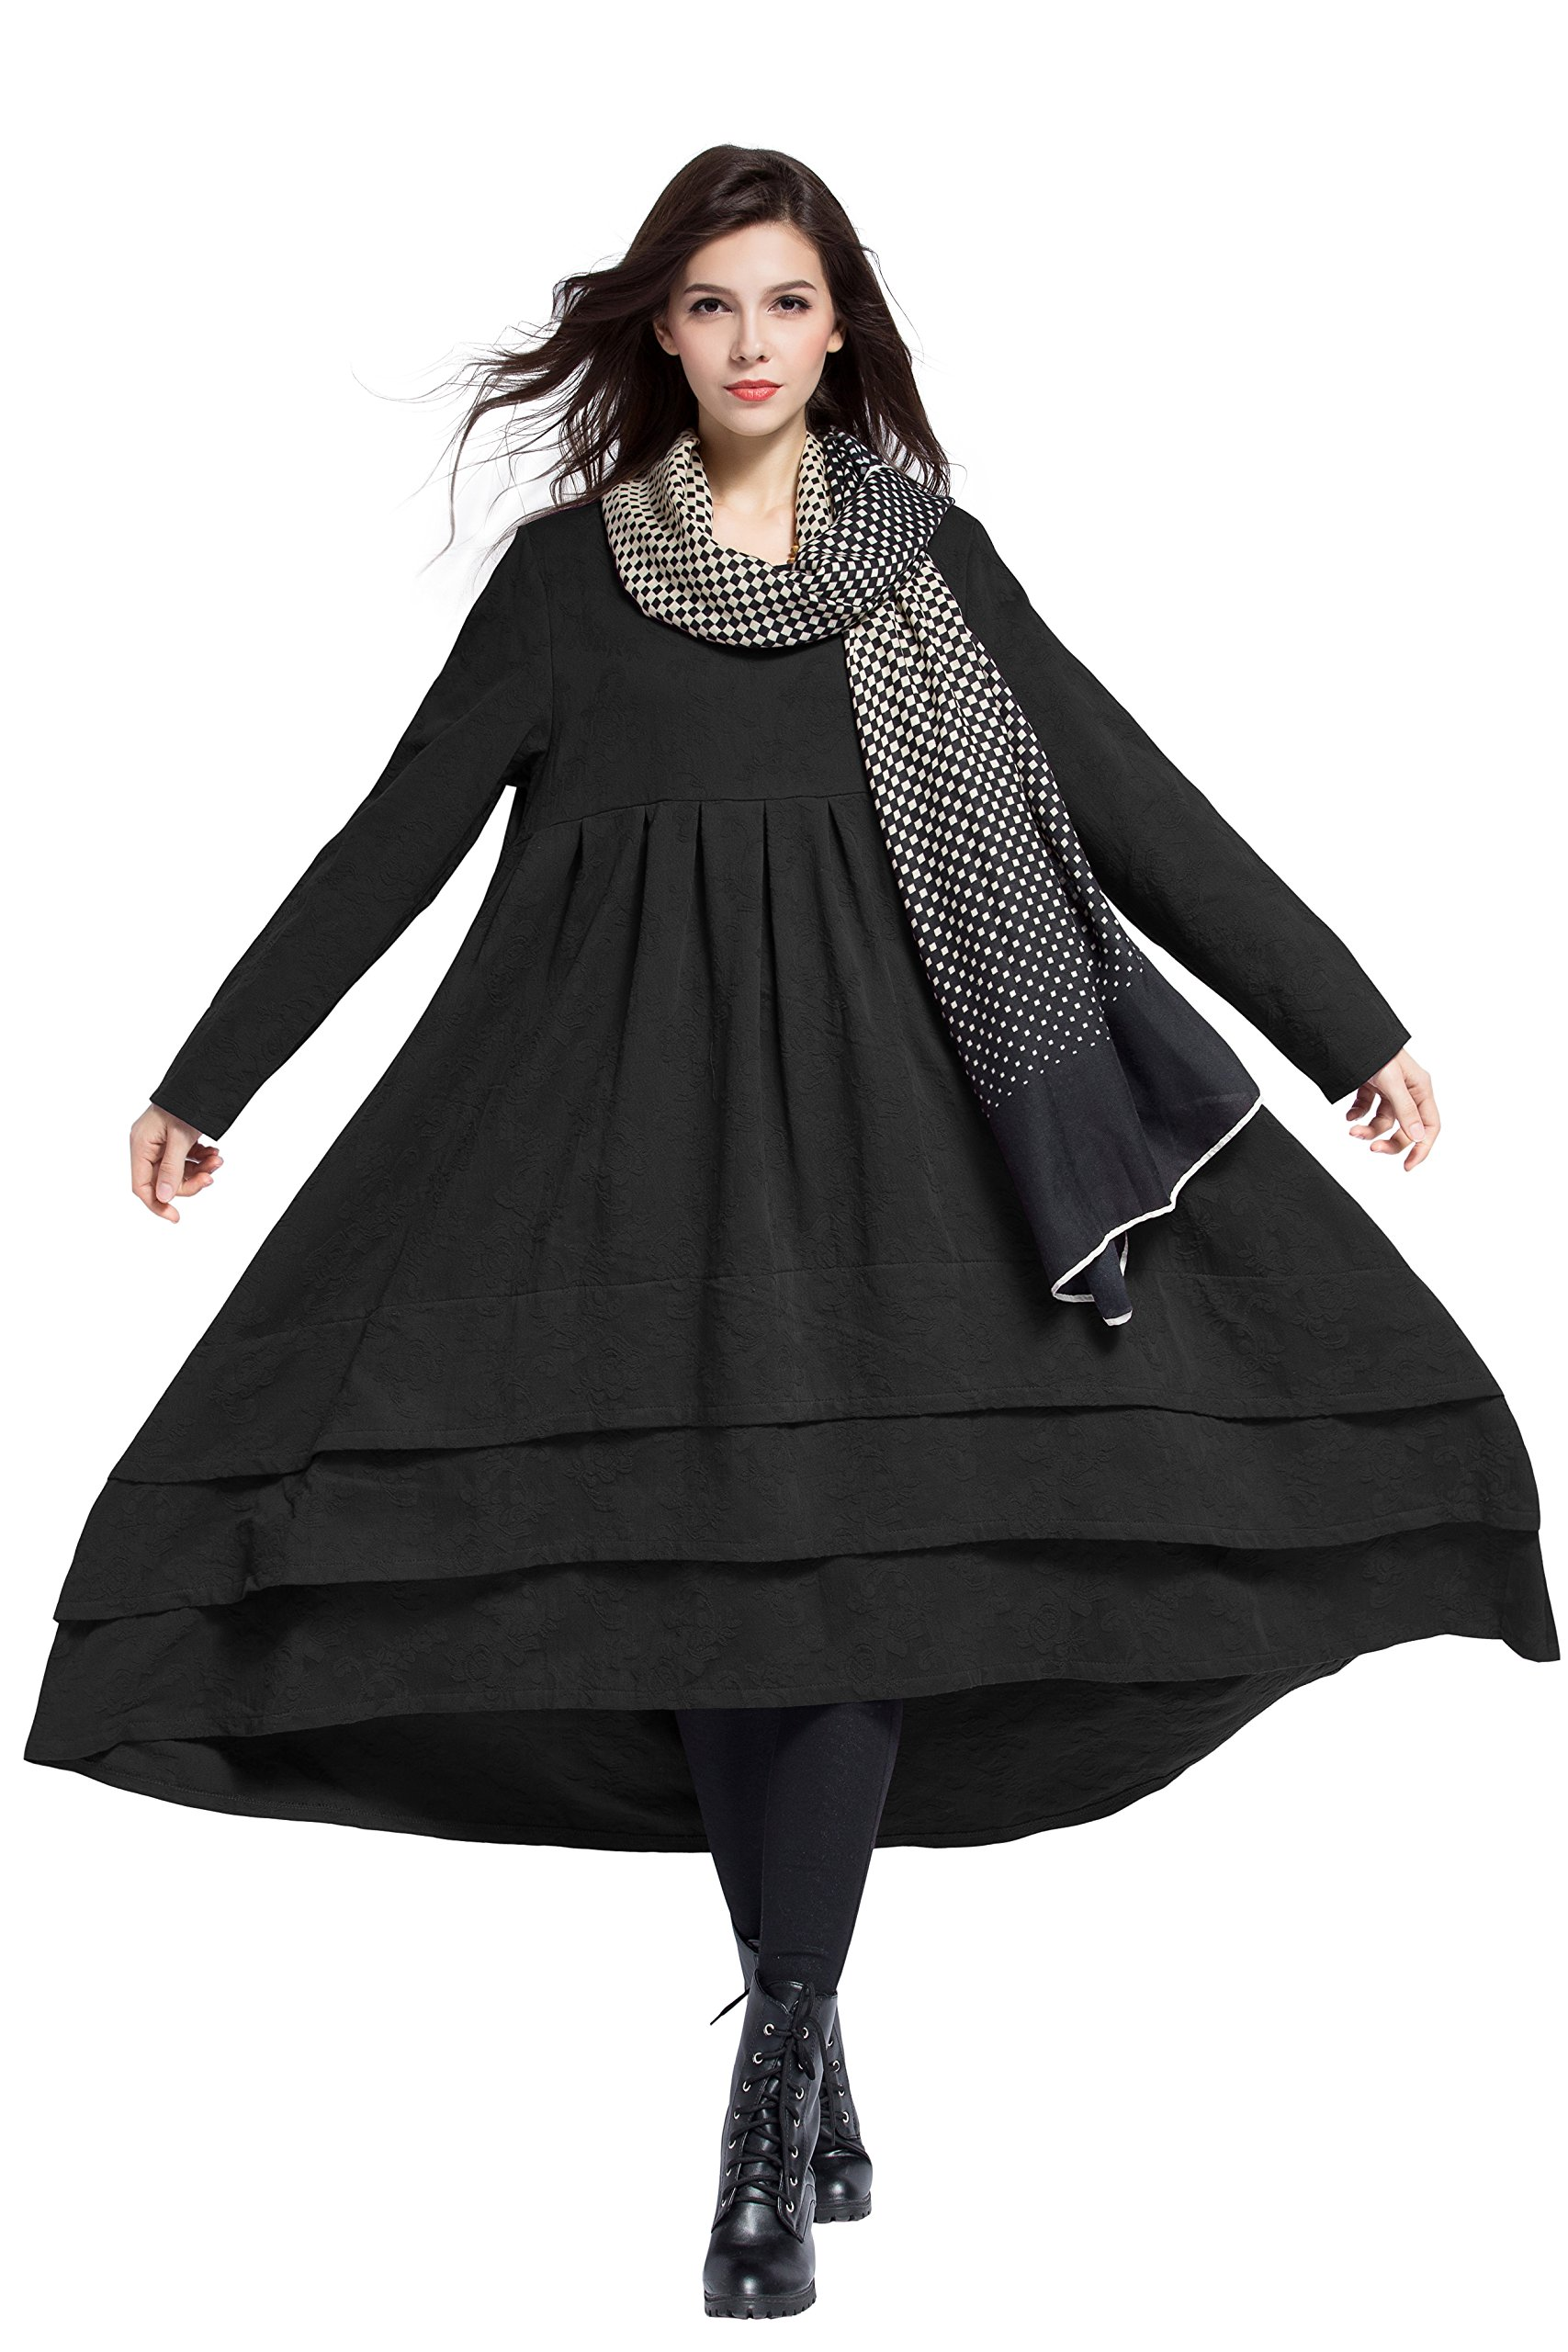 Anysize Jacquard Soft Linen&Cotton Dress Spring Winter Plus Size Dress Y312